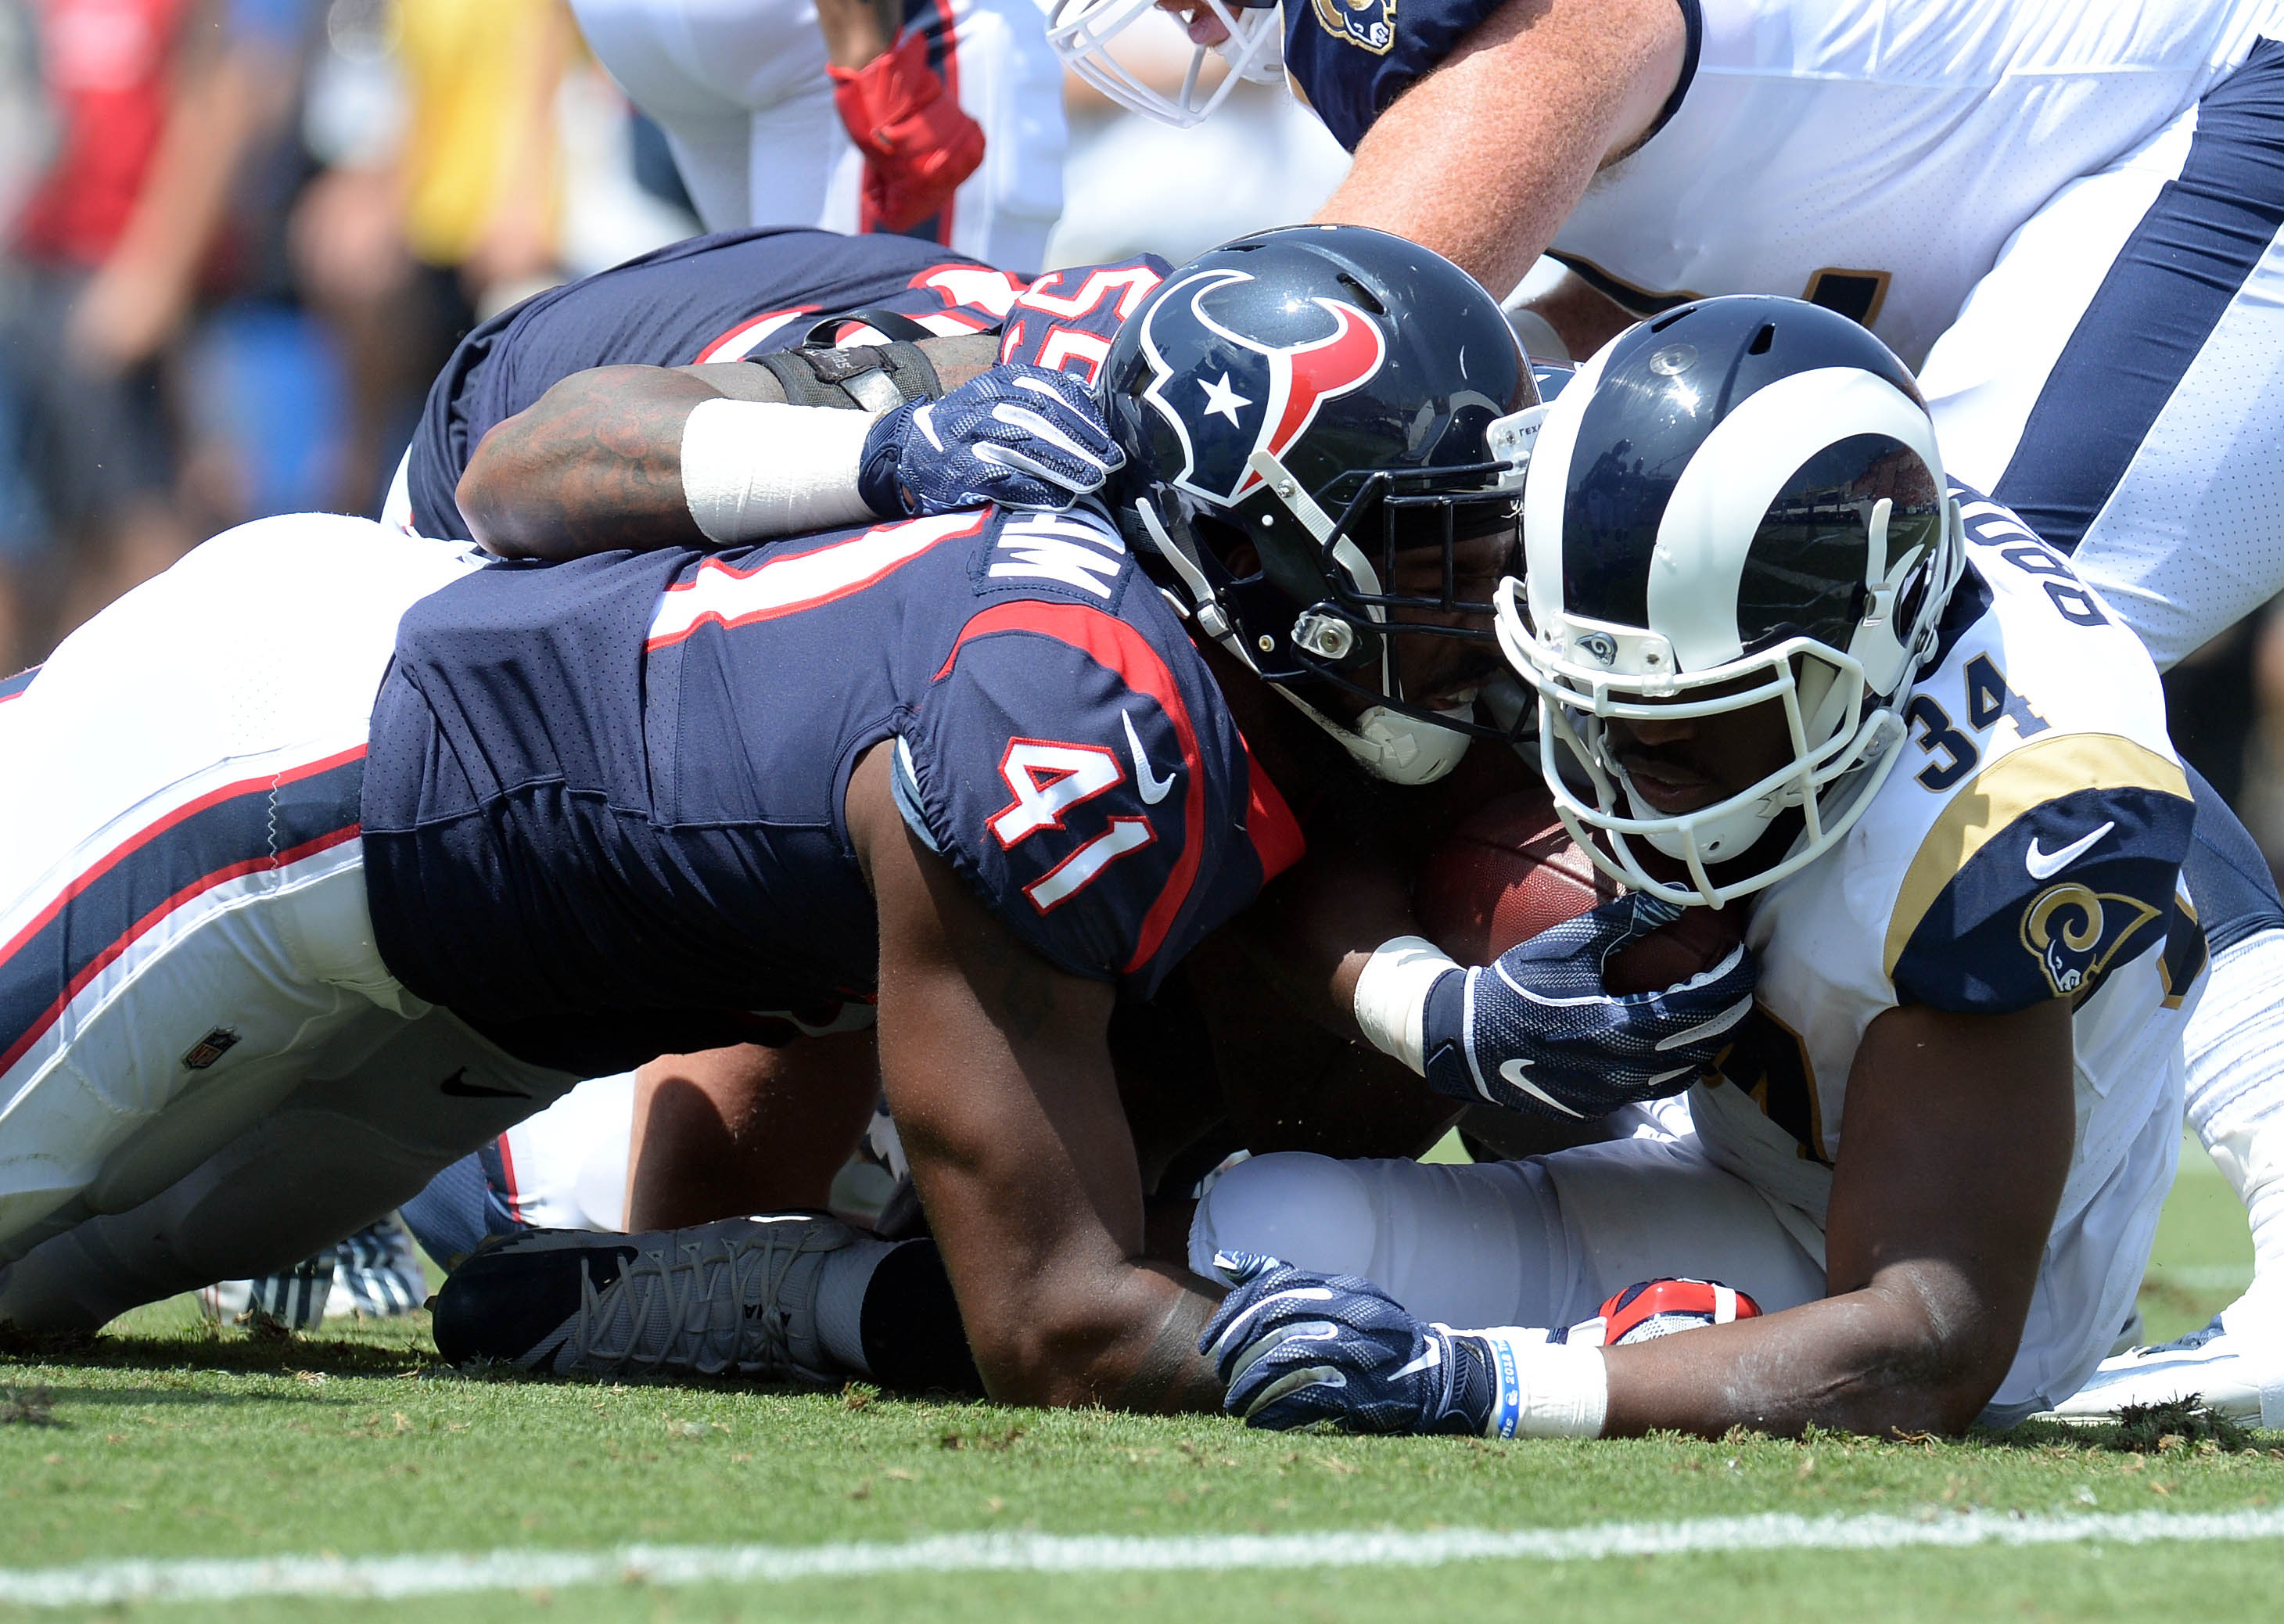 August 25, 2018; Los Angeles, CA, USA; Los Angeles Rams running back Malcolm Brown (34) is brought down by Houston Texans linebacker Zach Cunningham (41) during the first half at Los Angeles Memorial Coliseum. Mandatory Credit: Gary A. Vasquez-USA TODAY Sports